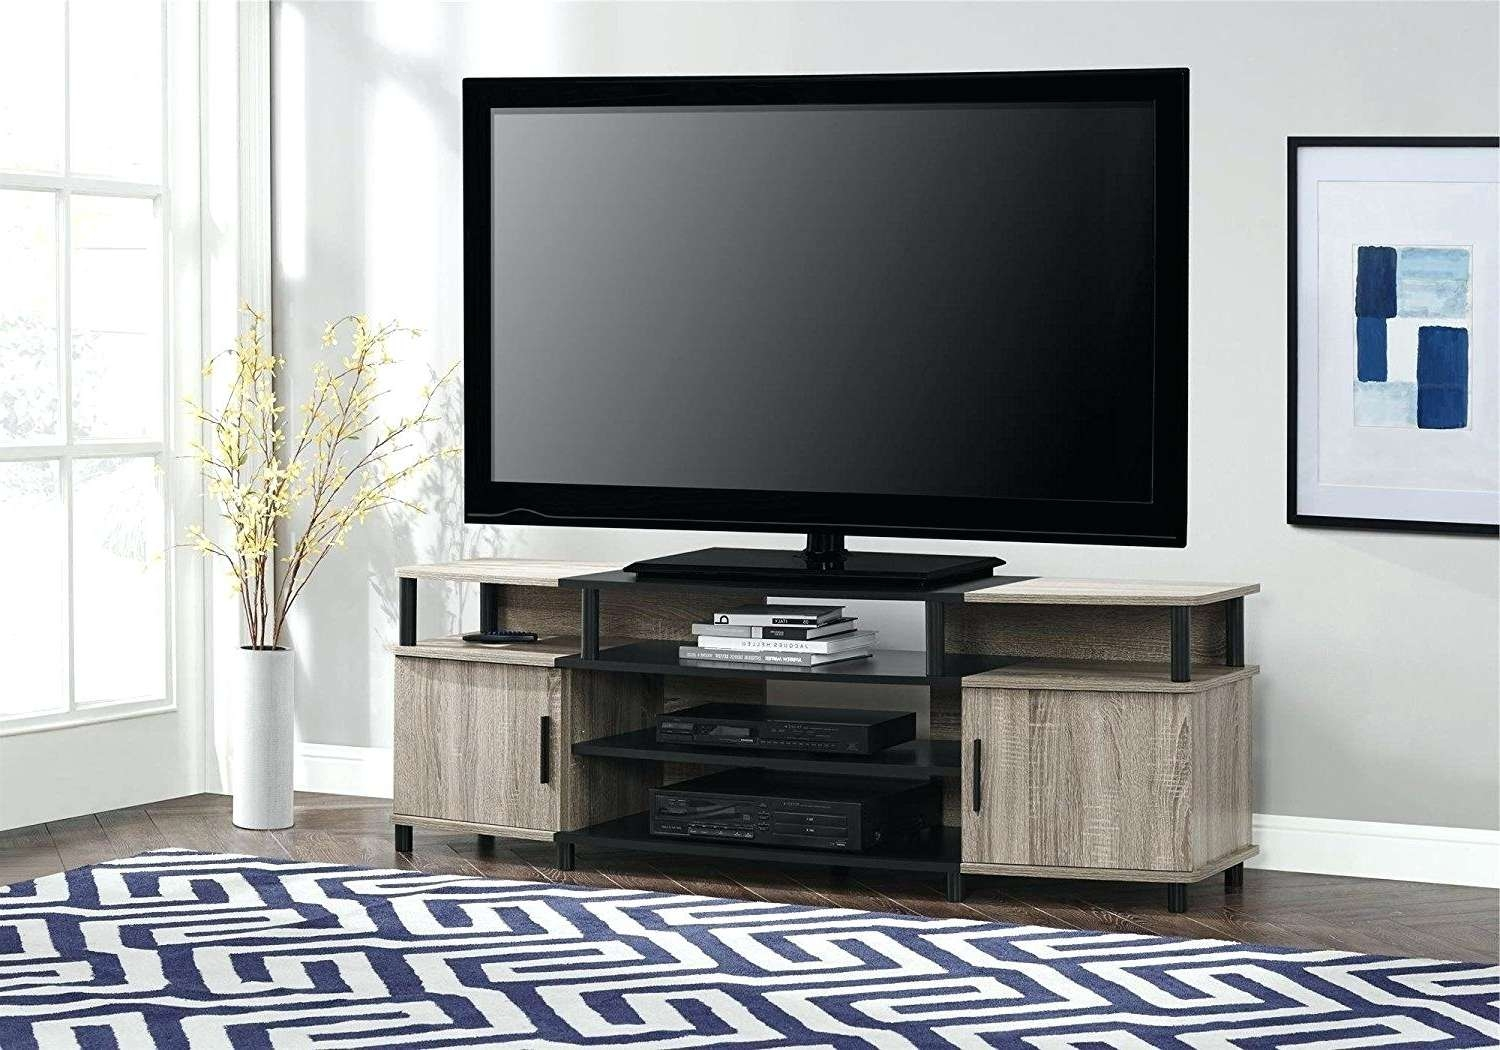 Tv Stand With Storage Baskets T V Stands Media Centers Value City Intended For Tv Stands With Storage Baskets (View 14 of 15)